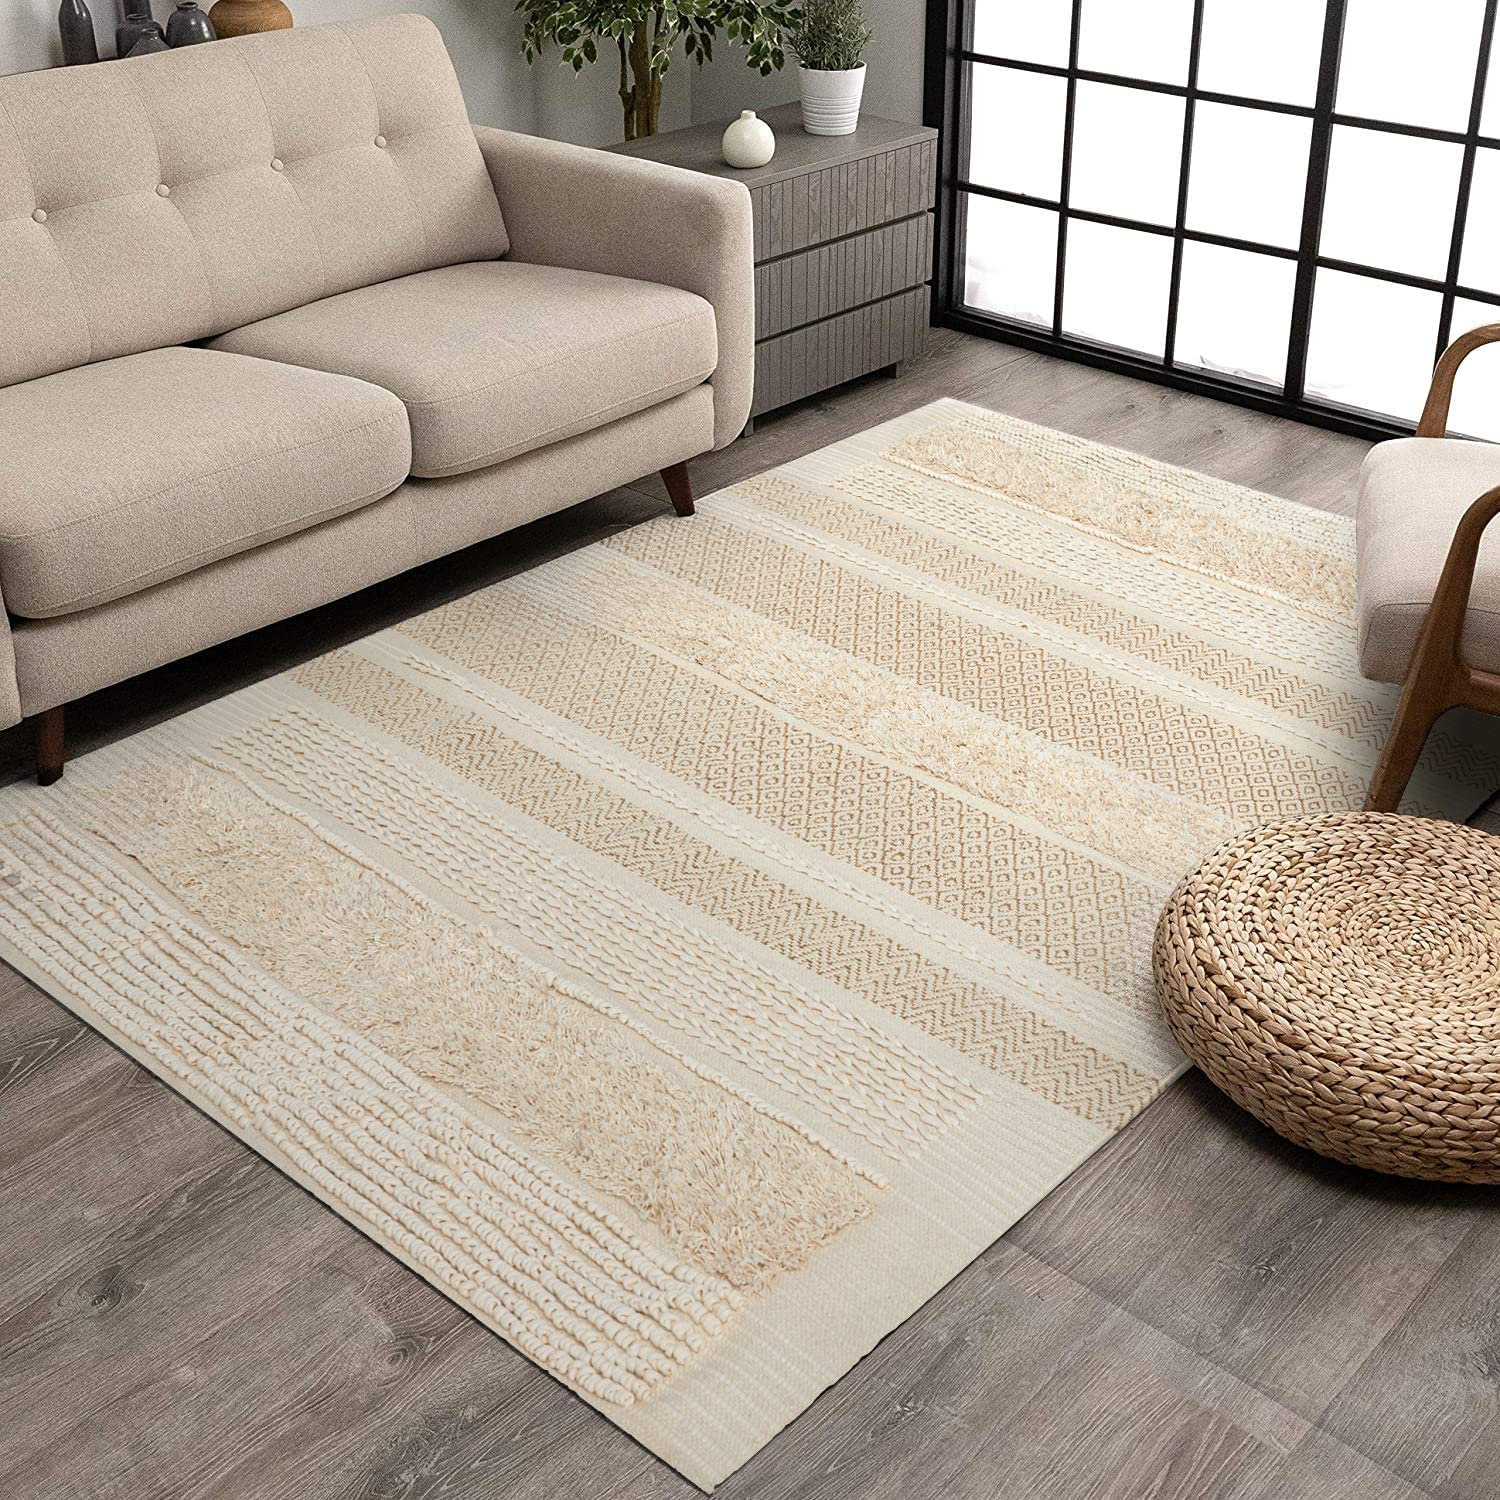 MOTINI Tufted Cotton Area Rug 5' x Knotted Woven 買取 Boho 7' Hand 日本メーカー新品 S